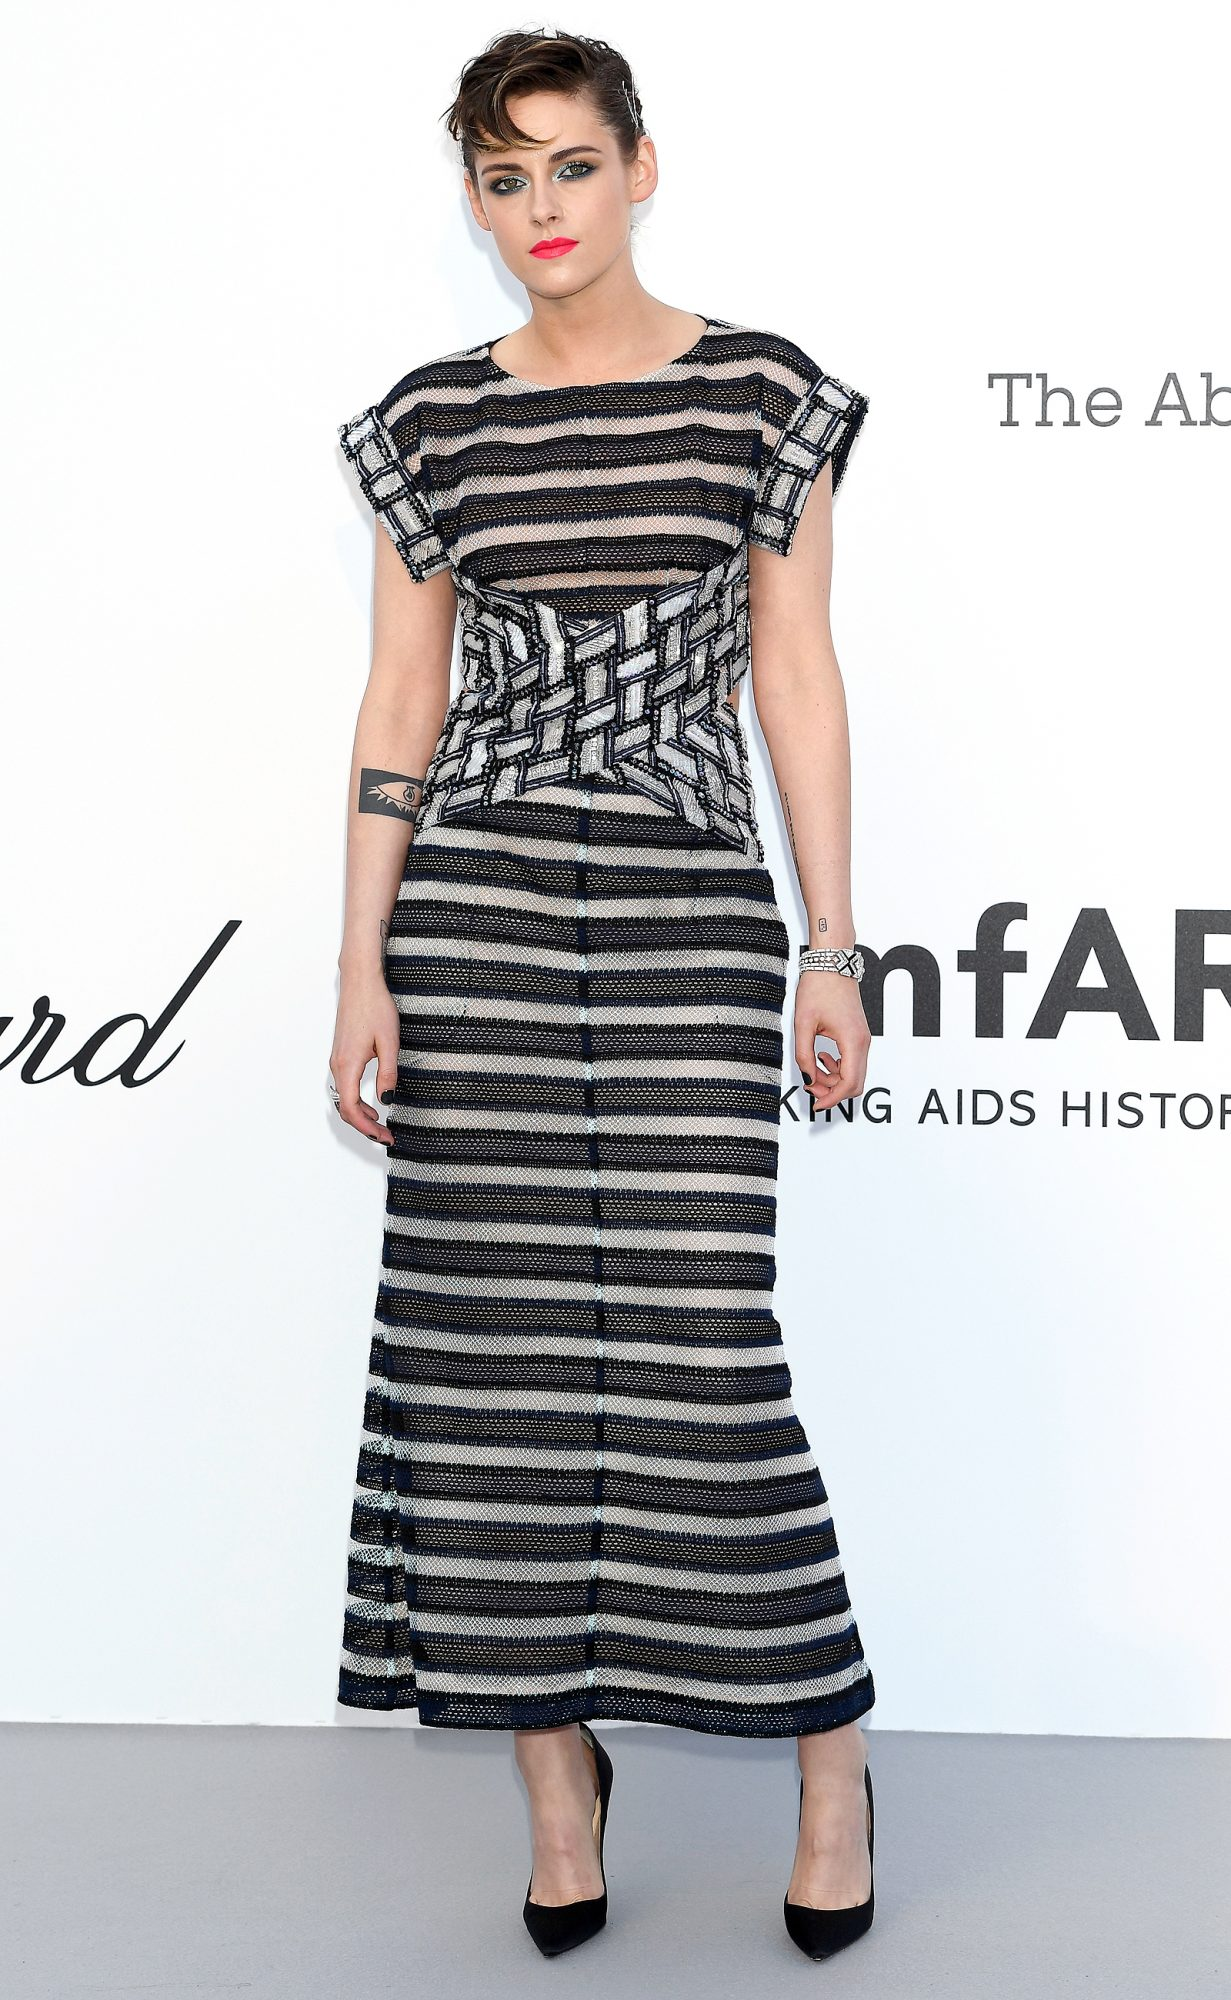 KRISTEN STEWART The juror wore a semi-sheer embroidered striped dress from Chanel with black pumps and a bright orange lipstick to amfAR's 25th Cinema Against AIDS Gala.